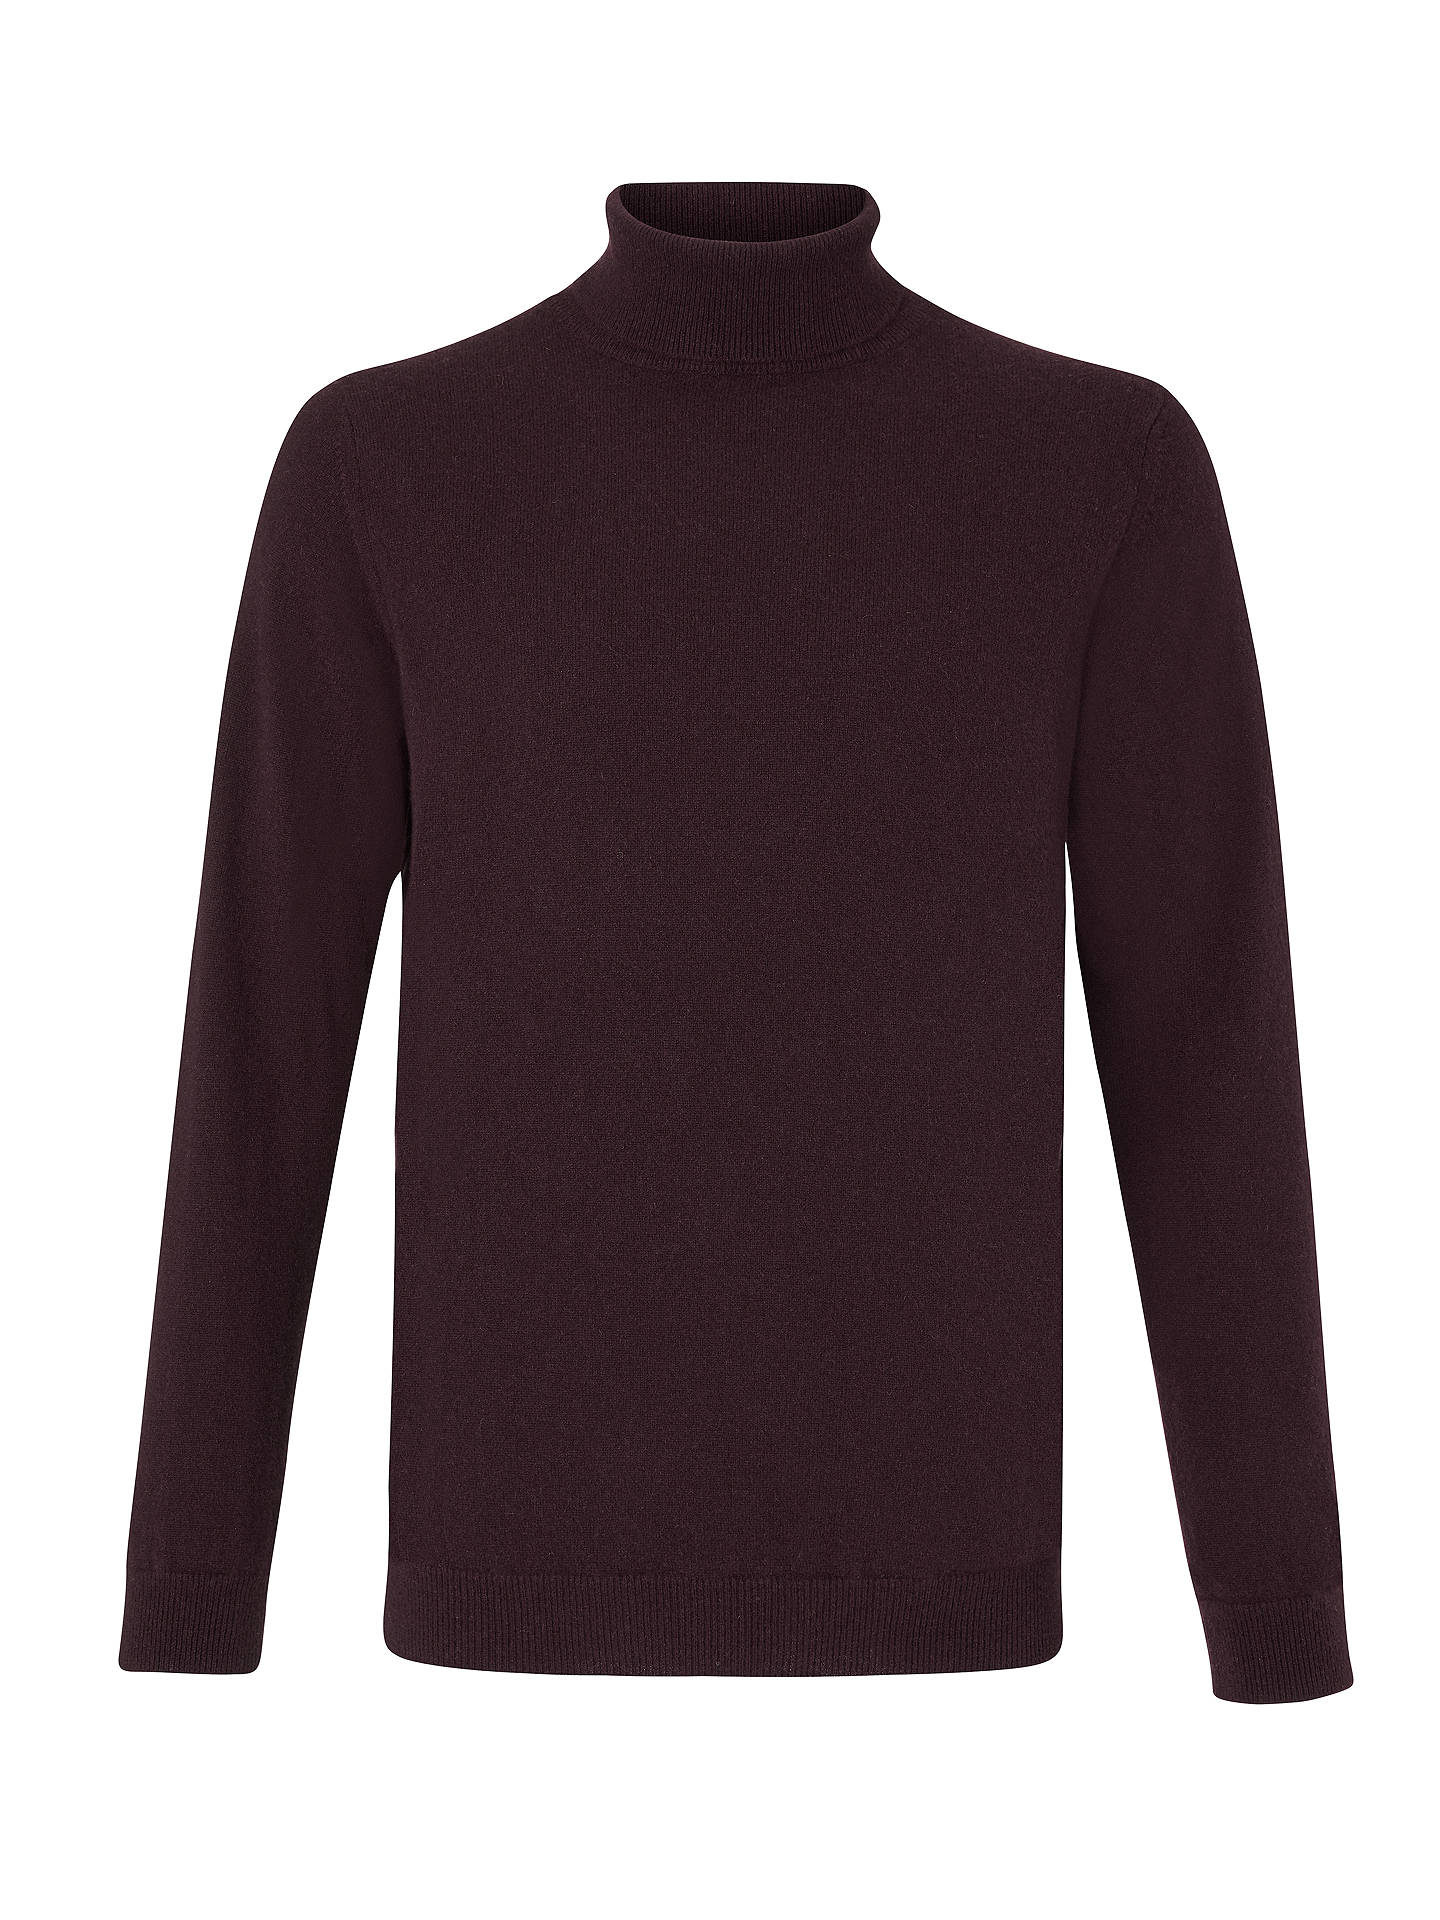 8bb2ac36737 John Lewis & Partners Italian Cashmere Roll Neck at John Lewis ...